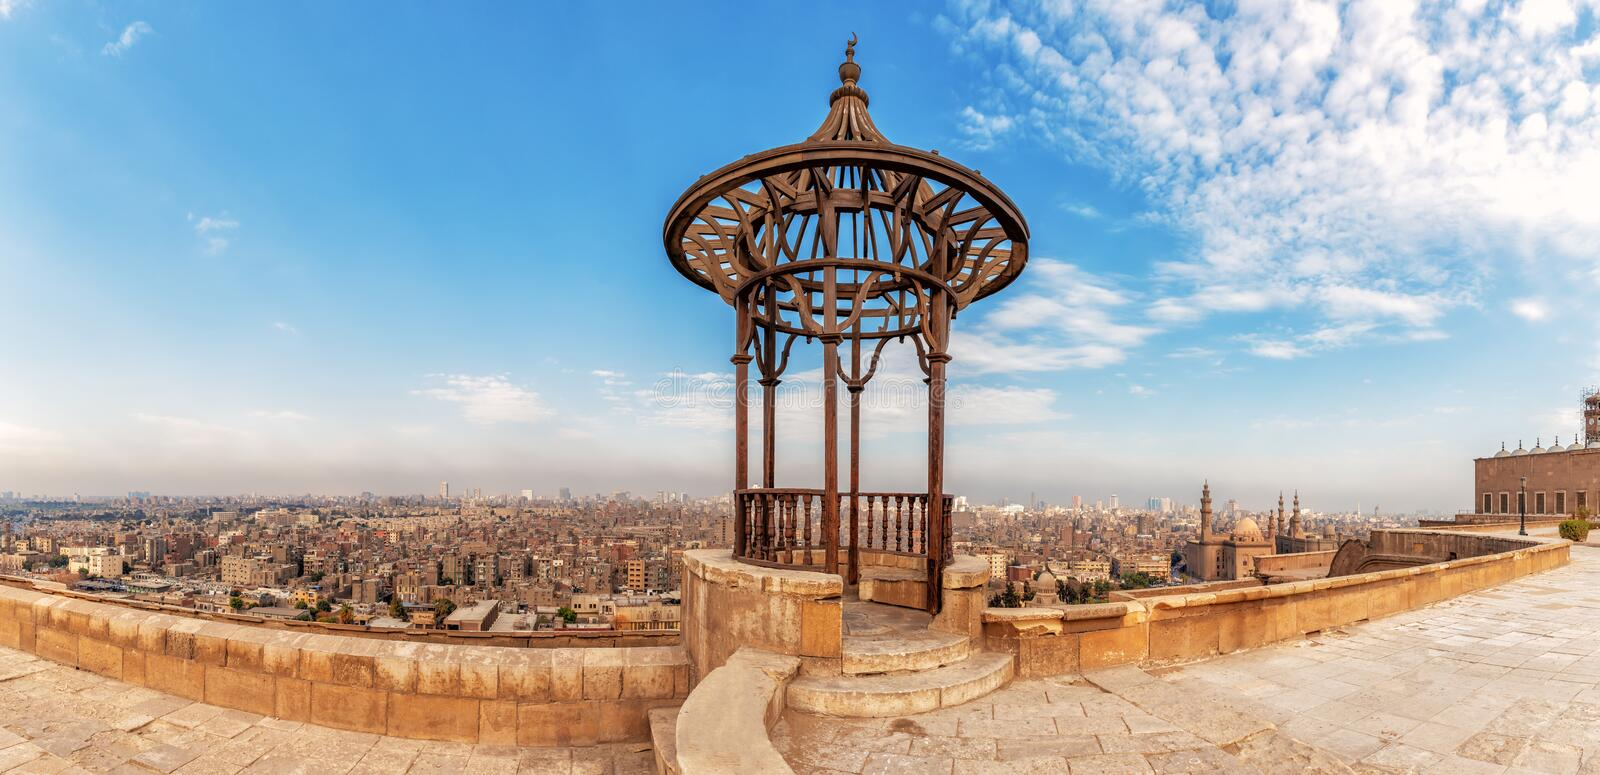 Old forged pavilion in the panorama of Cairo, view of the Citadel. Ali, ancient, arabic, architecture, attraction, beautiful, church, city, culture, dome stock photography